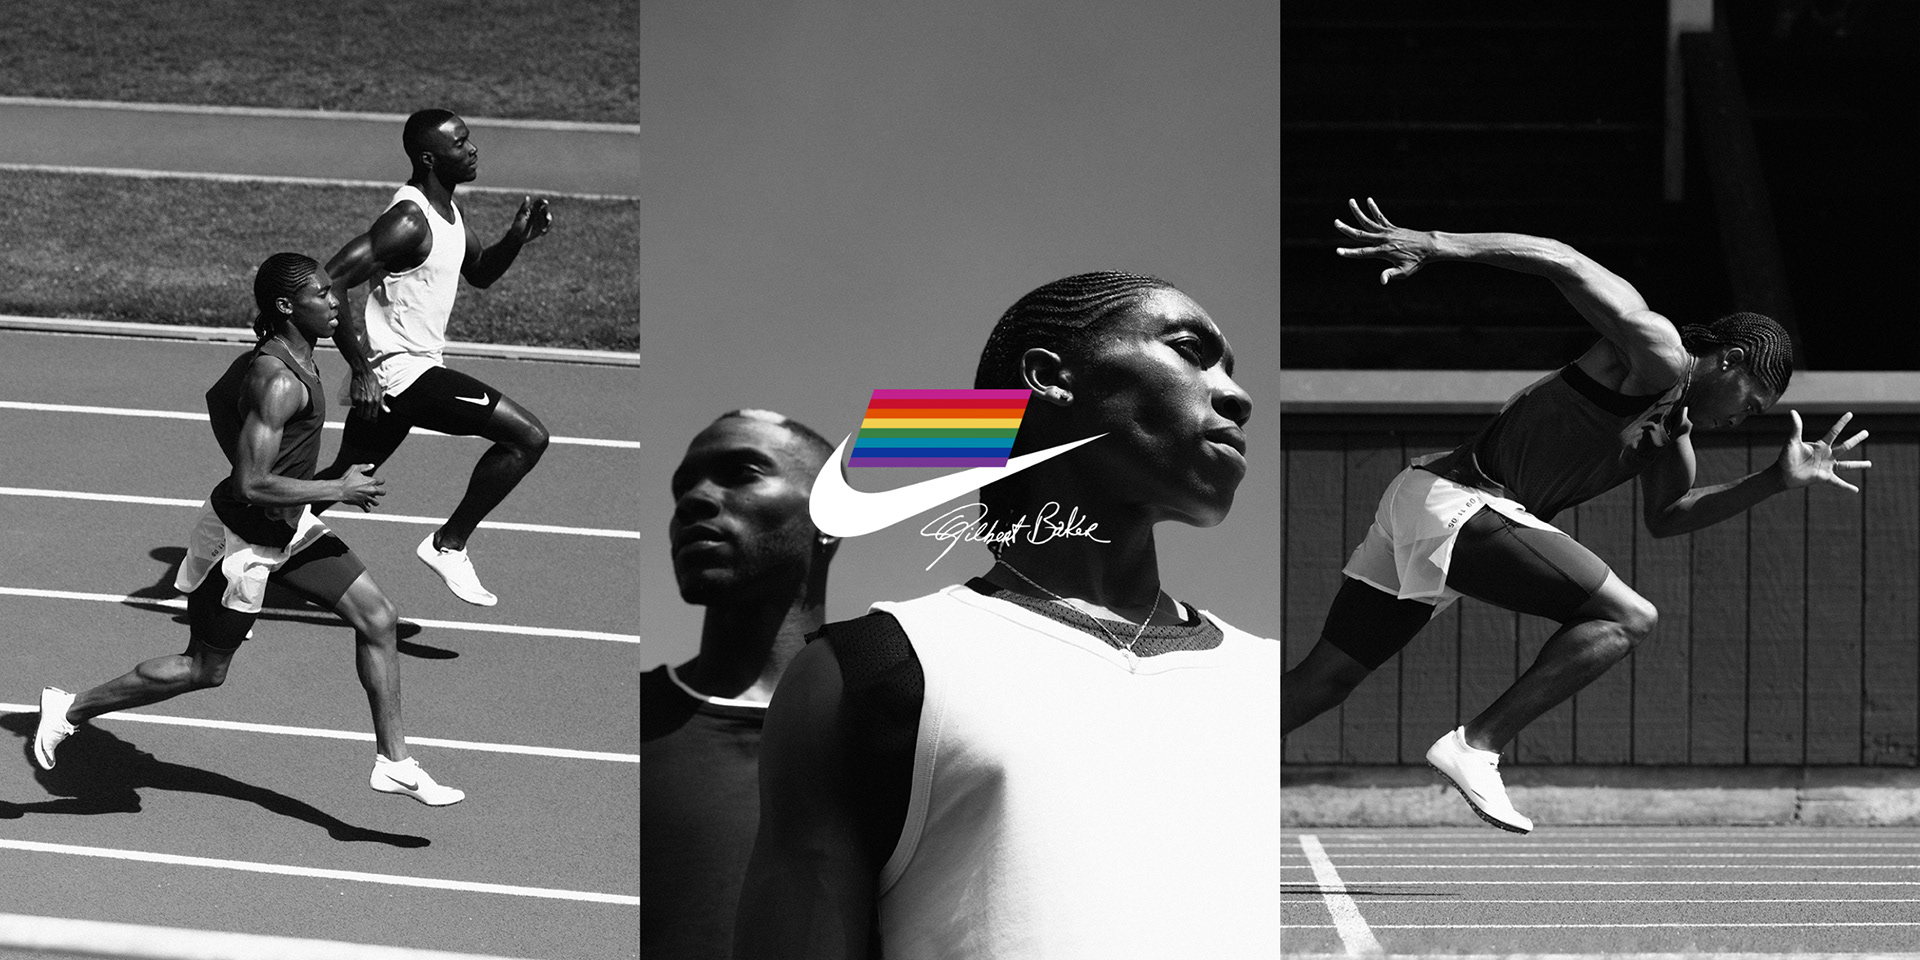 #Pride Nike BETRUE Campaign: Celebrating Unity and Equality